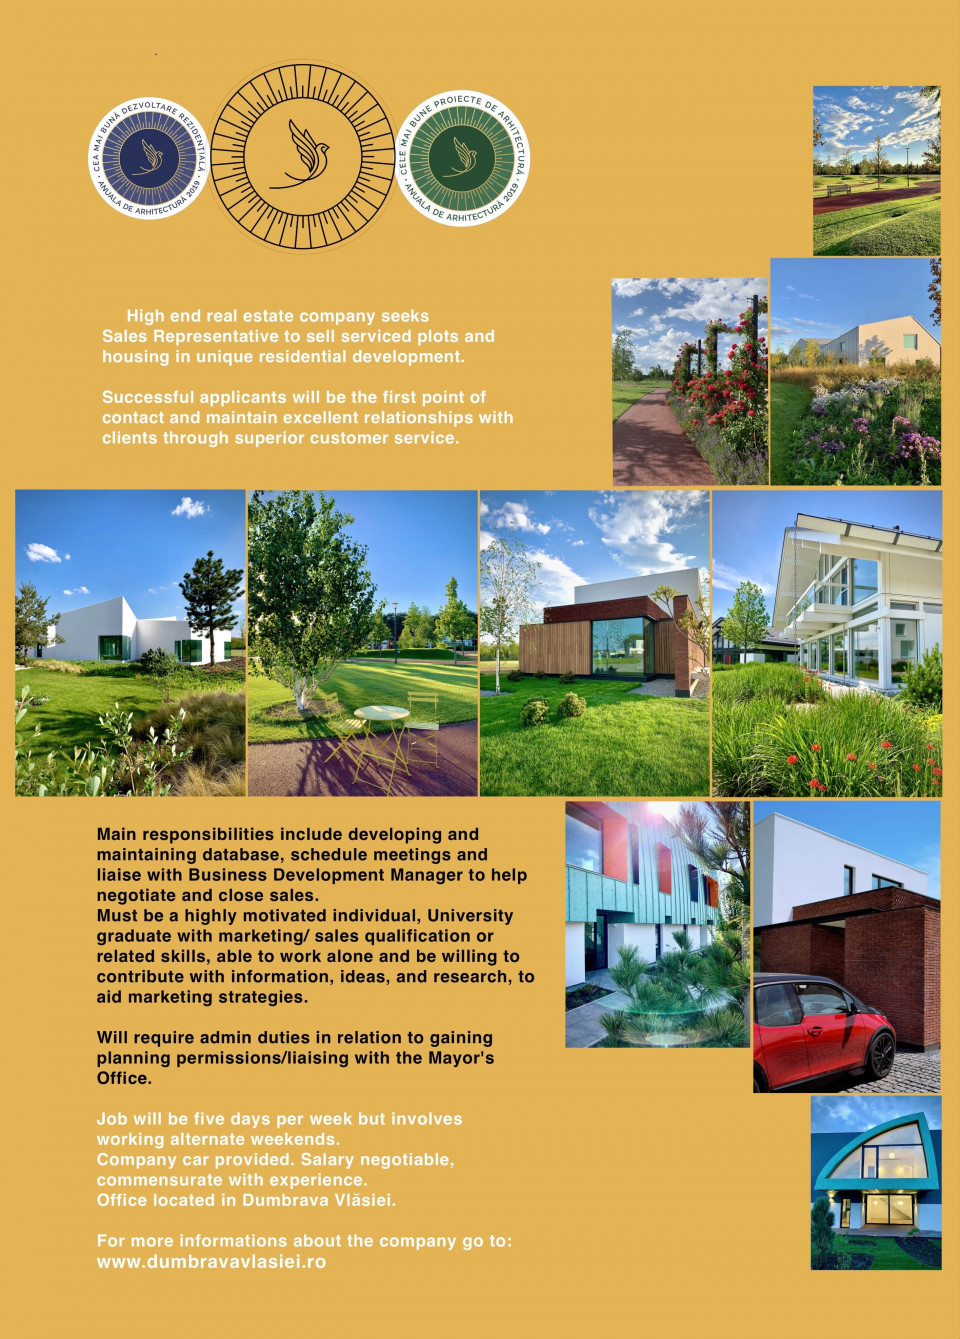 High end real estate company seeks Sales Representative to sell serviced plots and housing in unique residential development. Must be University graduate with marketing/sales qualification or related skills.